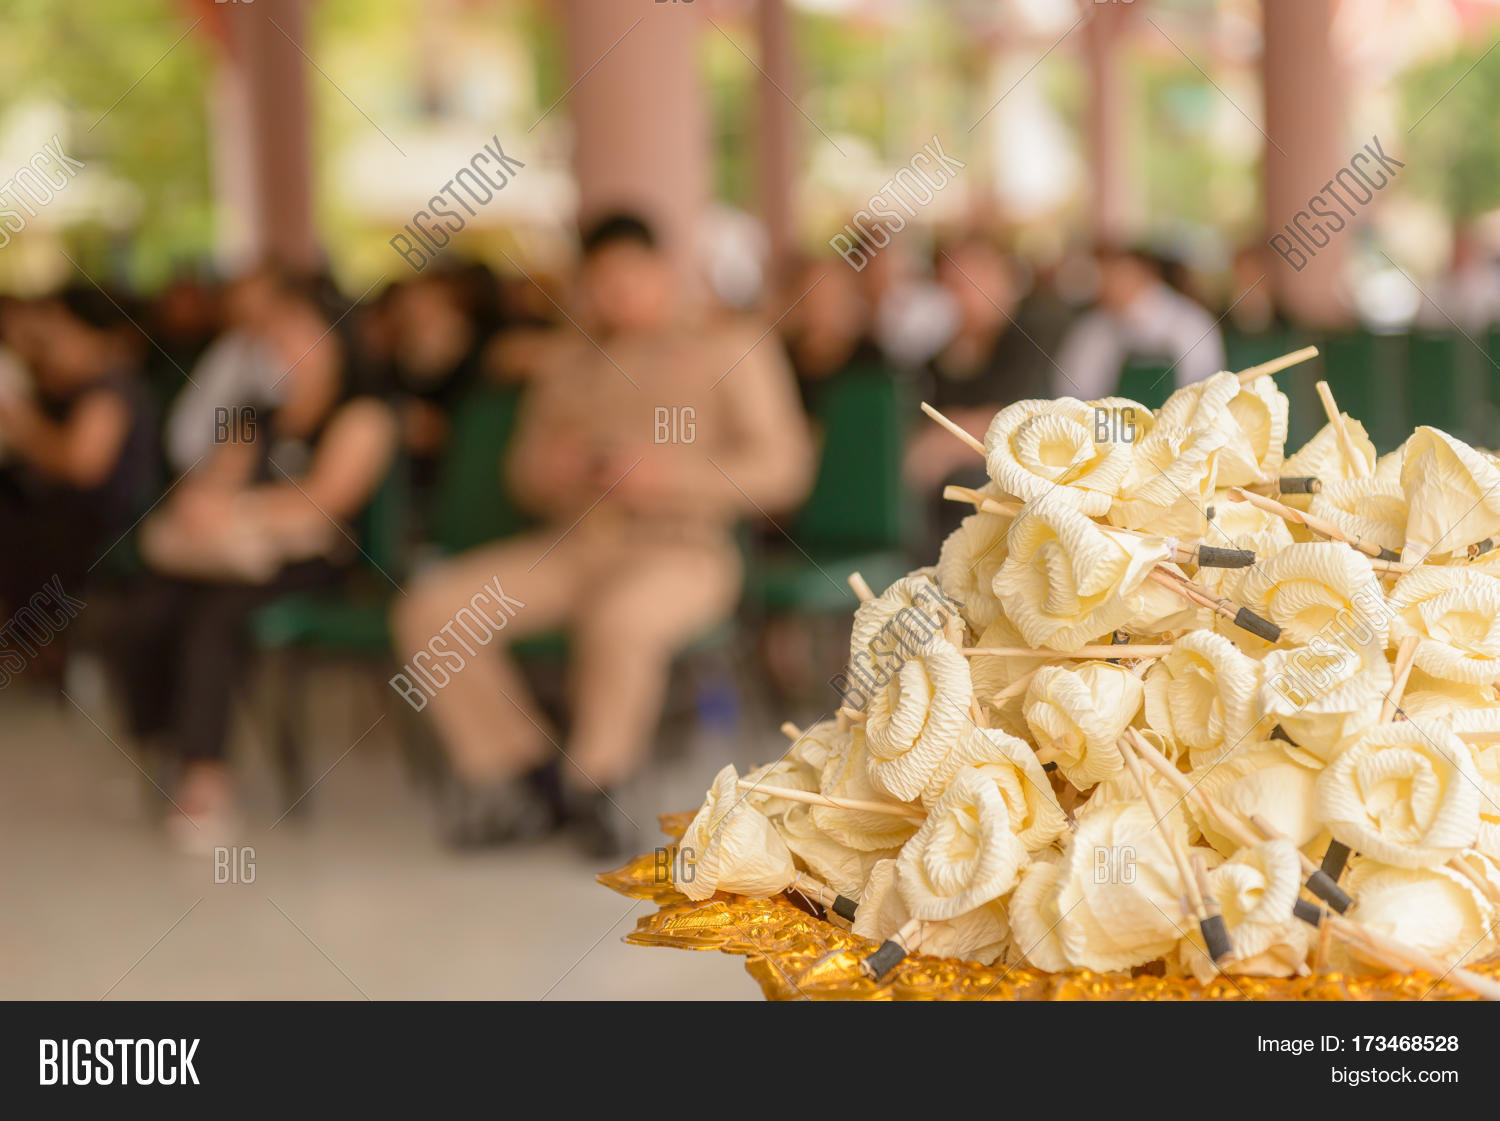 Sandalwood flowers image photo free trial bigstock sandalwood flowers or artificial flowers or wood cremation flower kind of wood flower to be placed izmirmasajfo